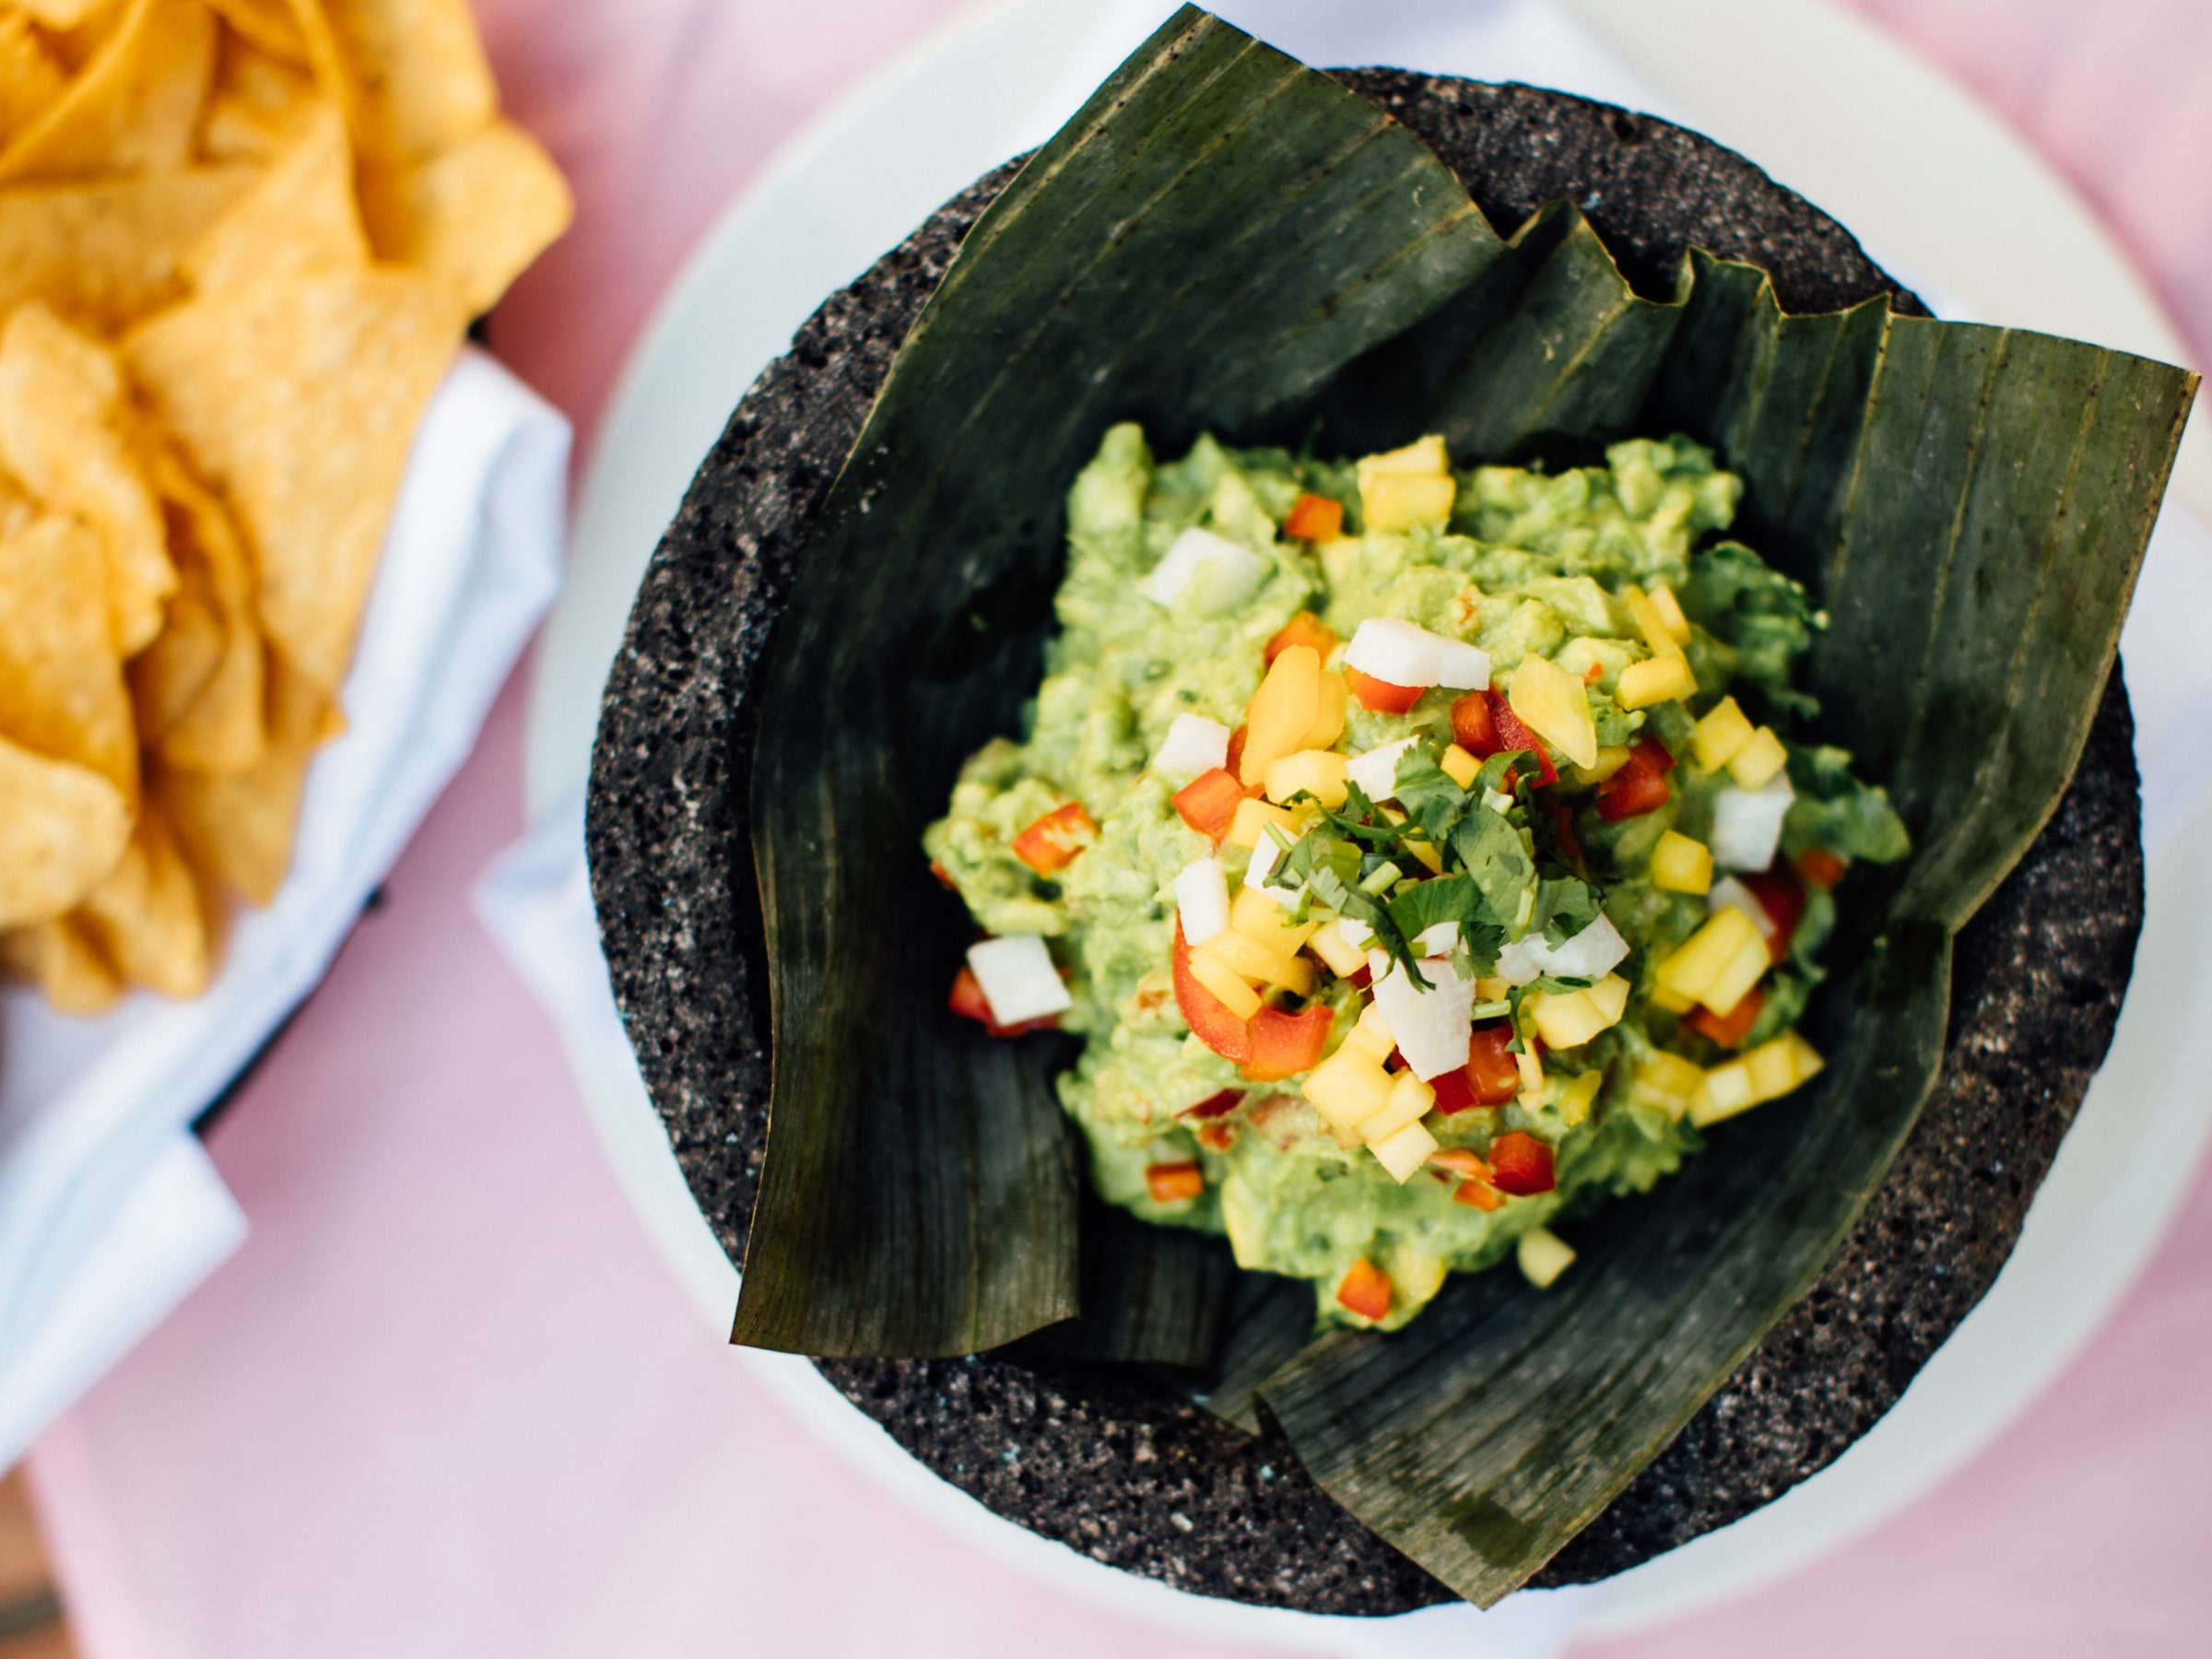 7 Spots To Spend National Spicy Guacamole Day